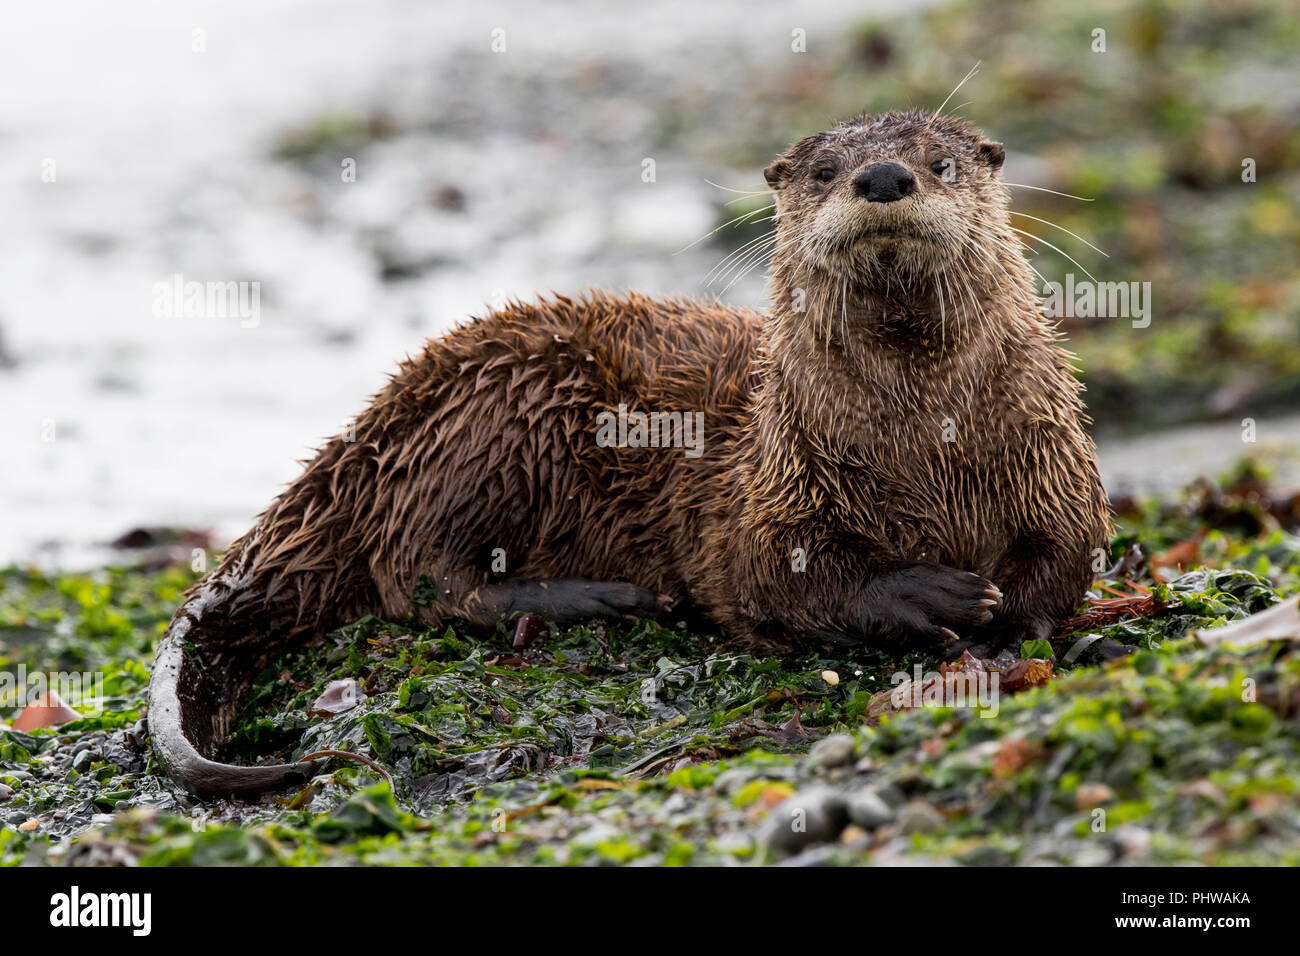 River otter, Lontra canadensis, on Port Townsend beach. Stock Photo